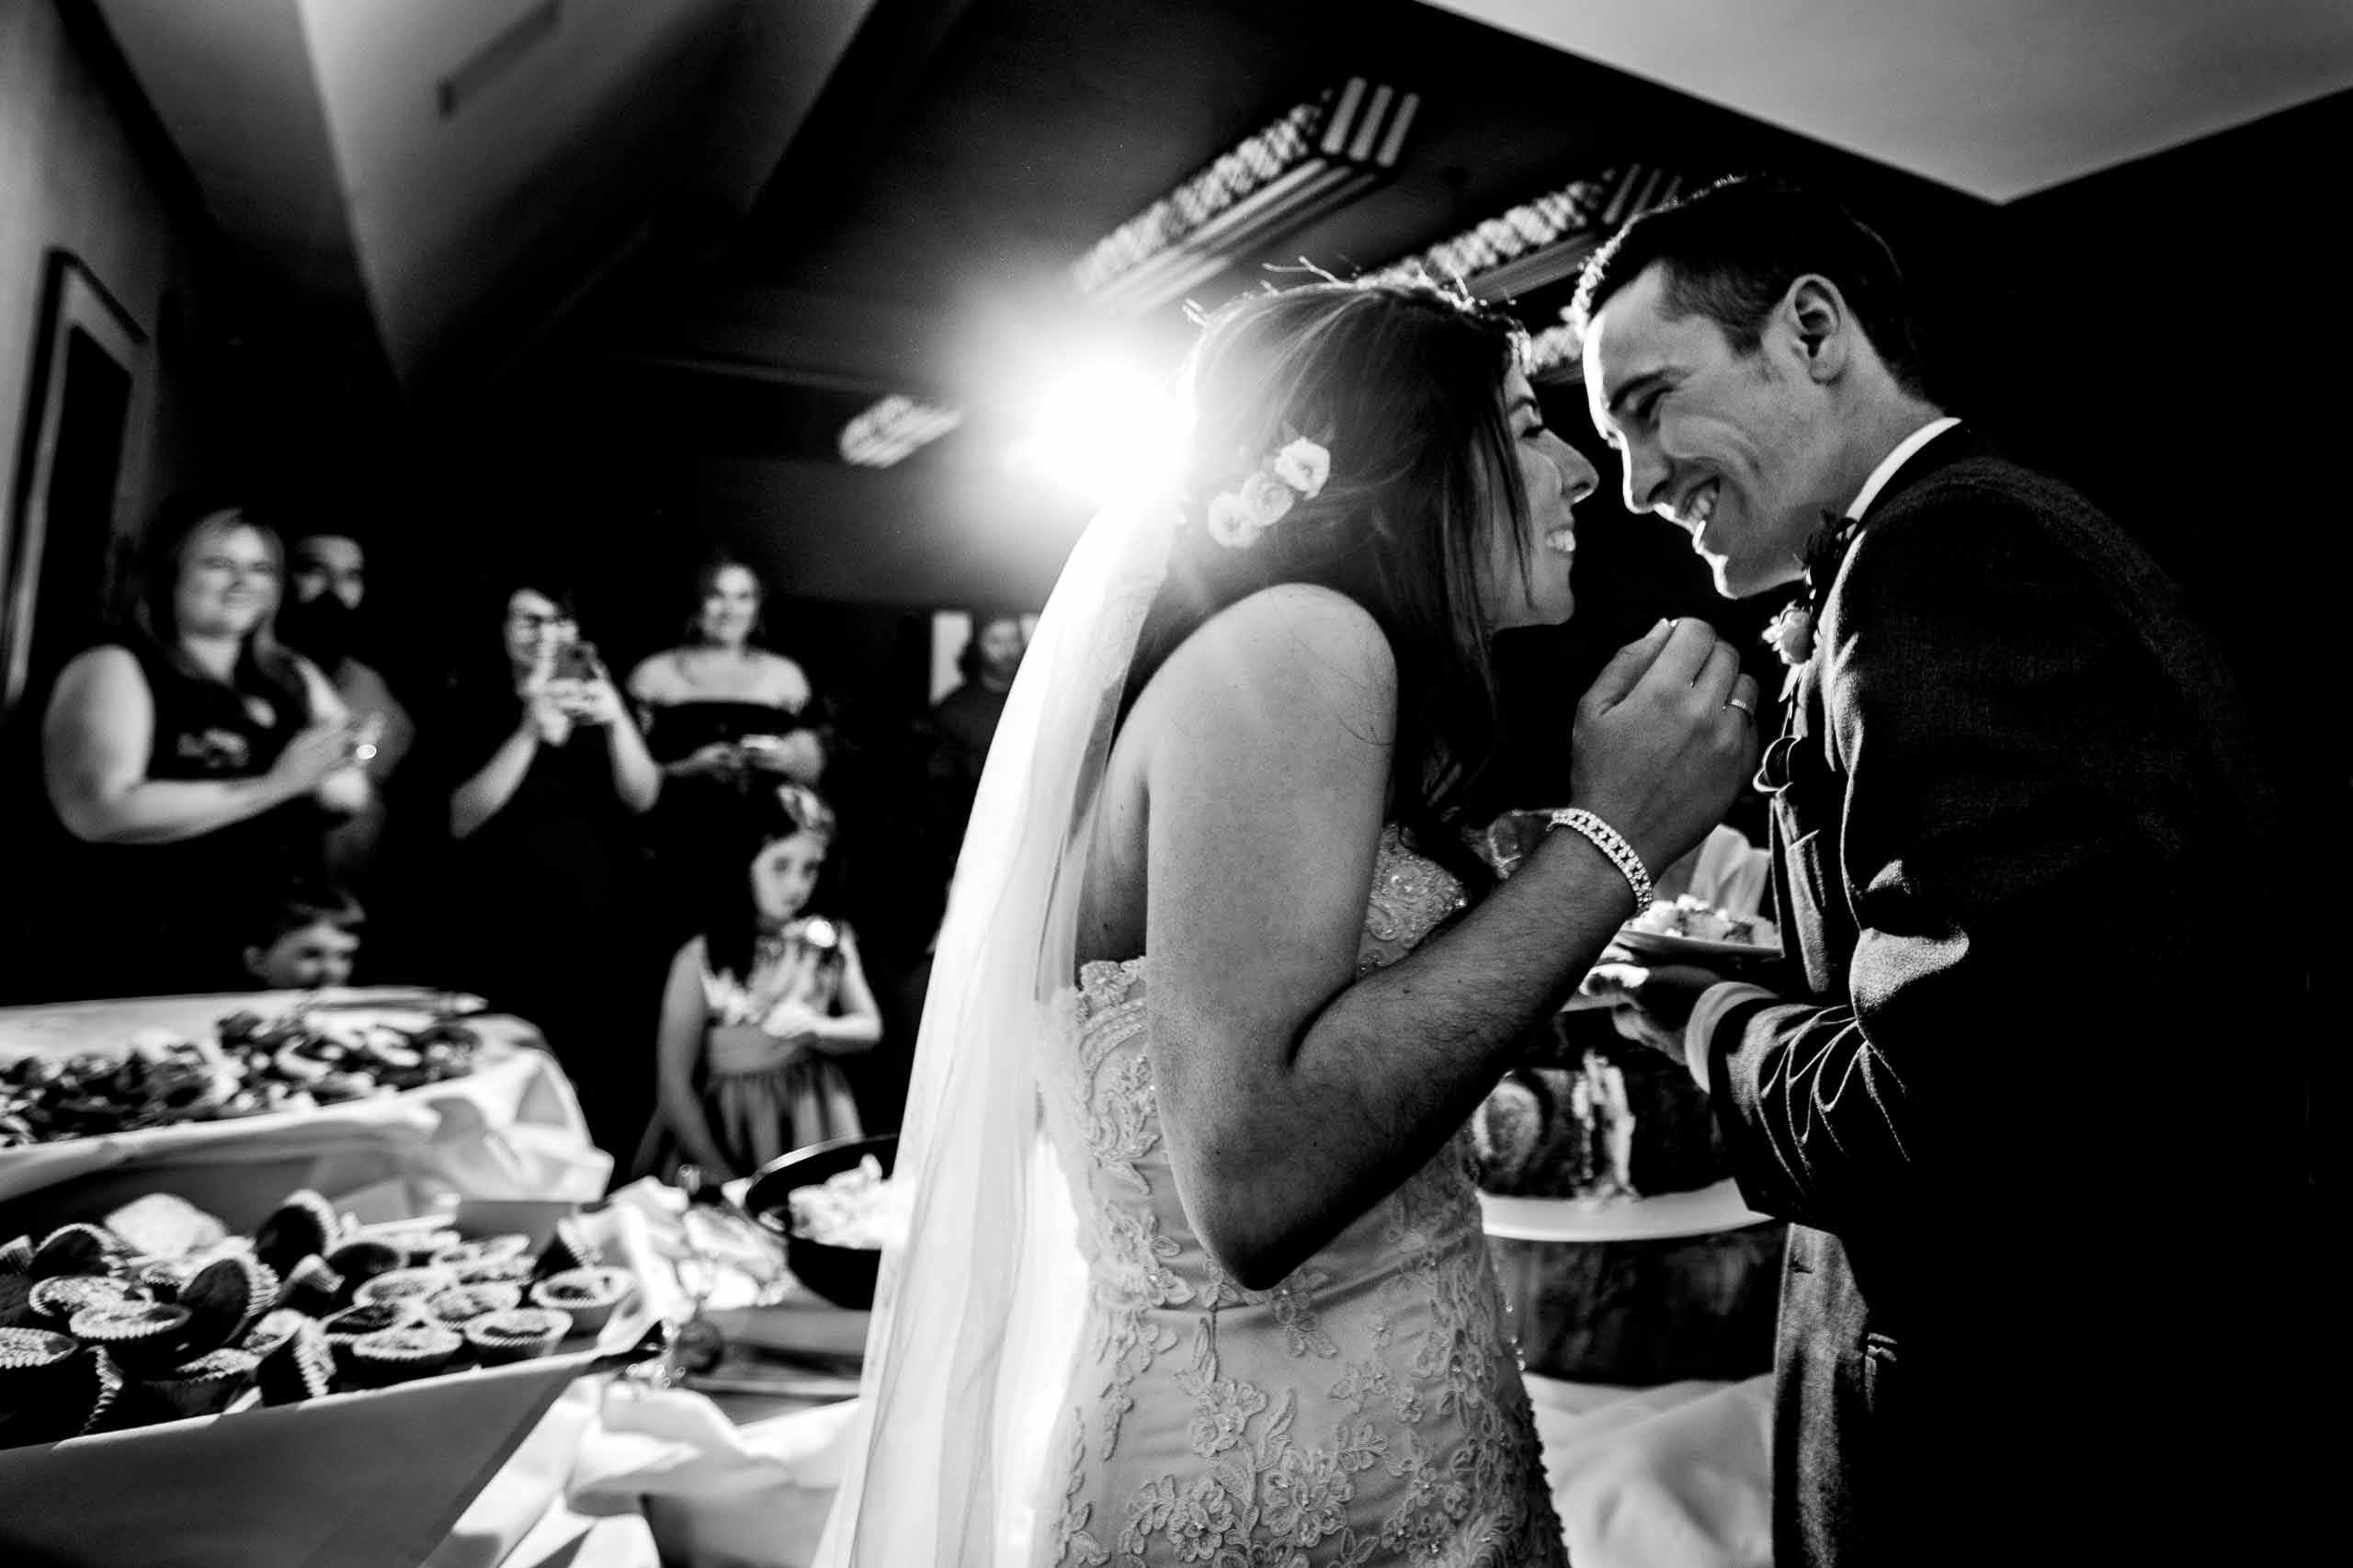 Bride and groom excited cutting their cake during their Timberline Lodge Wedding reception